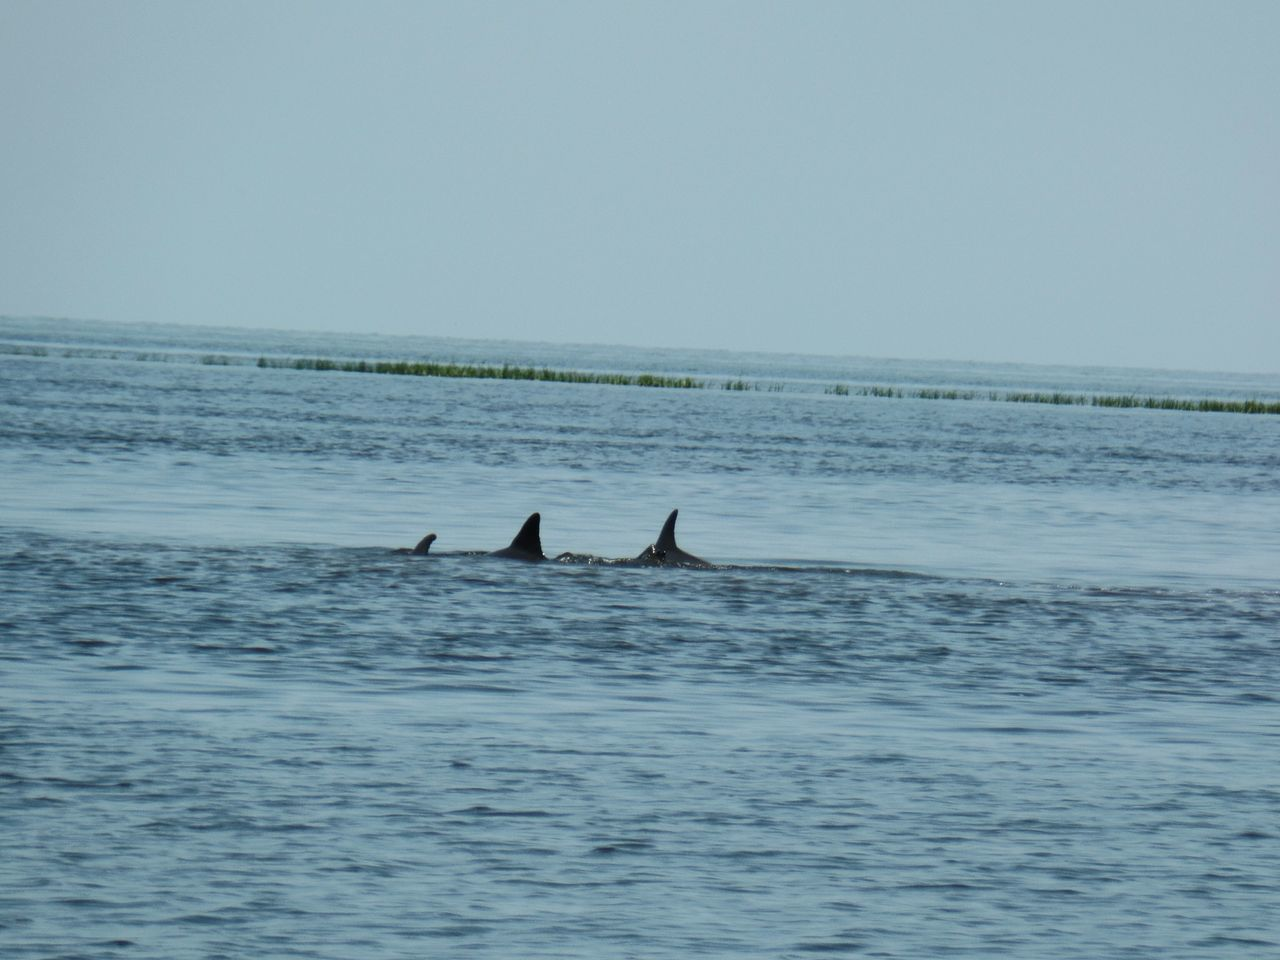 Landscape_lovers Naturelovers Mothers Day Nature Photography Florida Beaches Dolphins Swimming Dolphinlover Dolphins Playing Florida Skies Check This Out Oceanview Spring2016Checkthis Out Naturephotography Yankeetown Florida Beaitiful View Naturelovers Natural Beauty Awesome Floridaliving